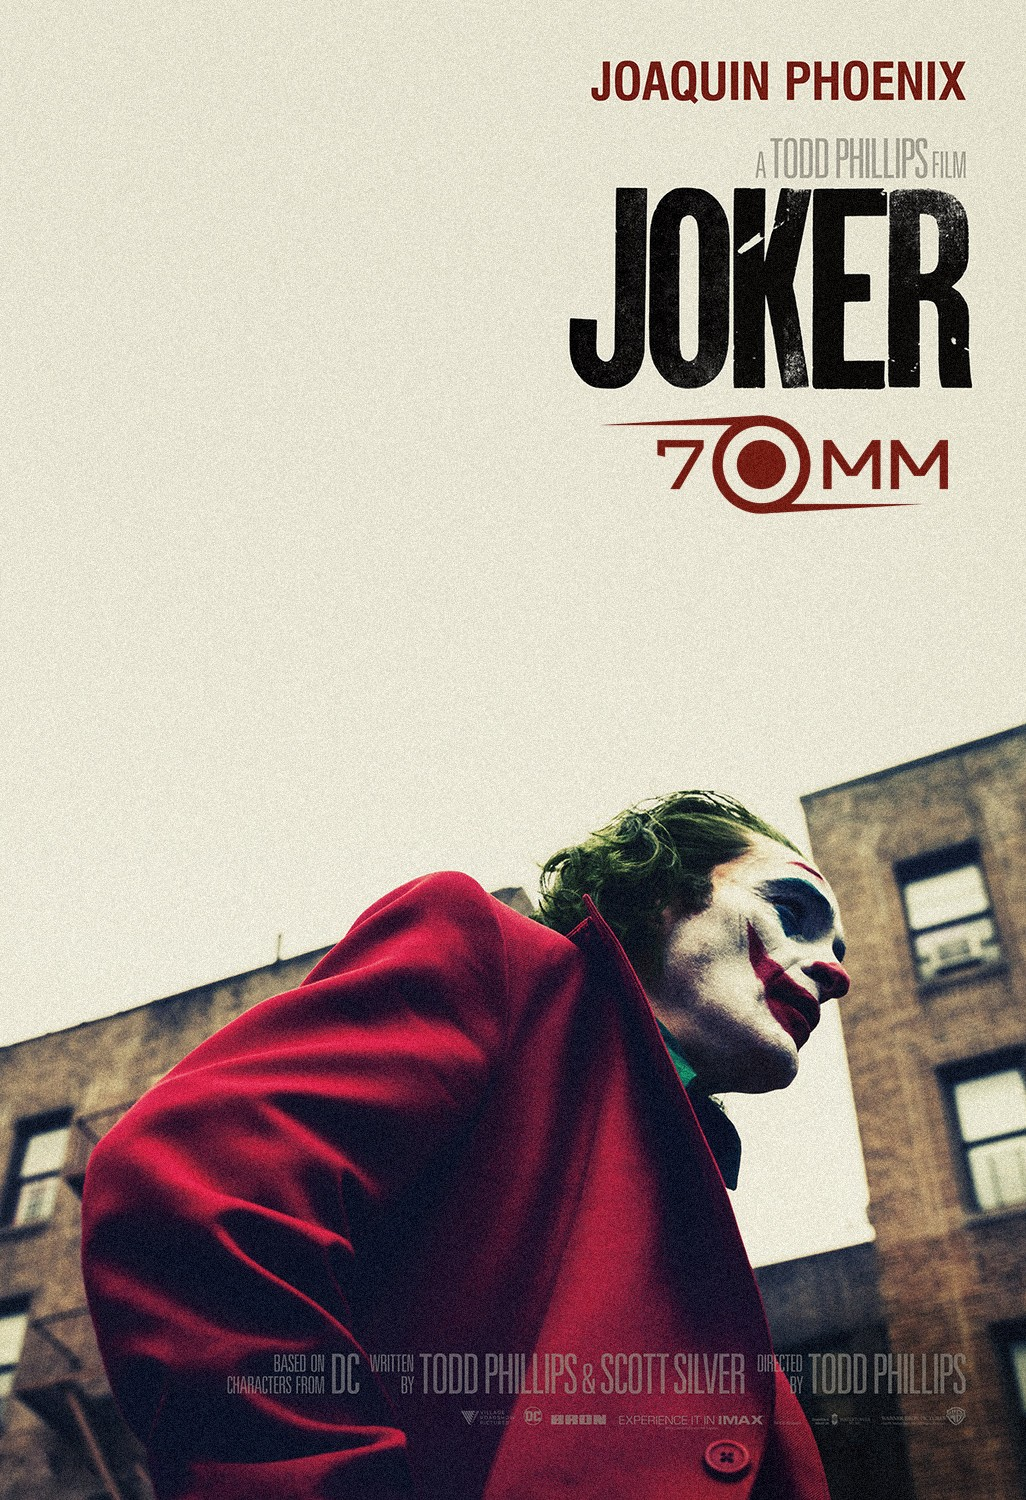 JOKER in 70mm